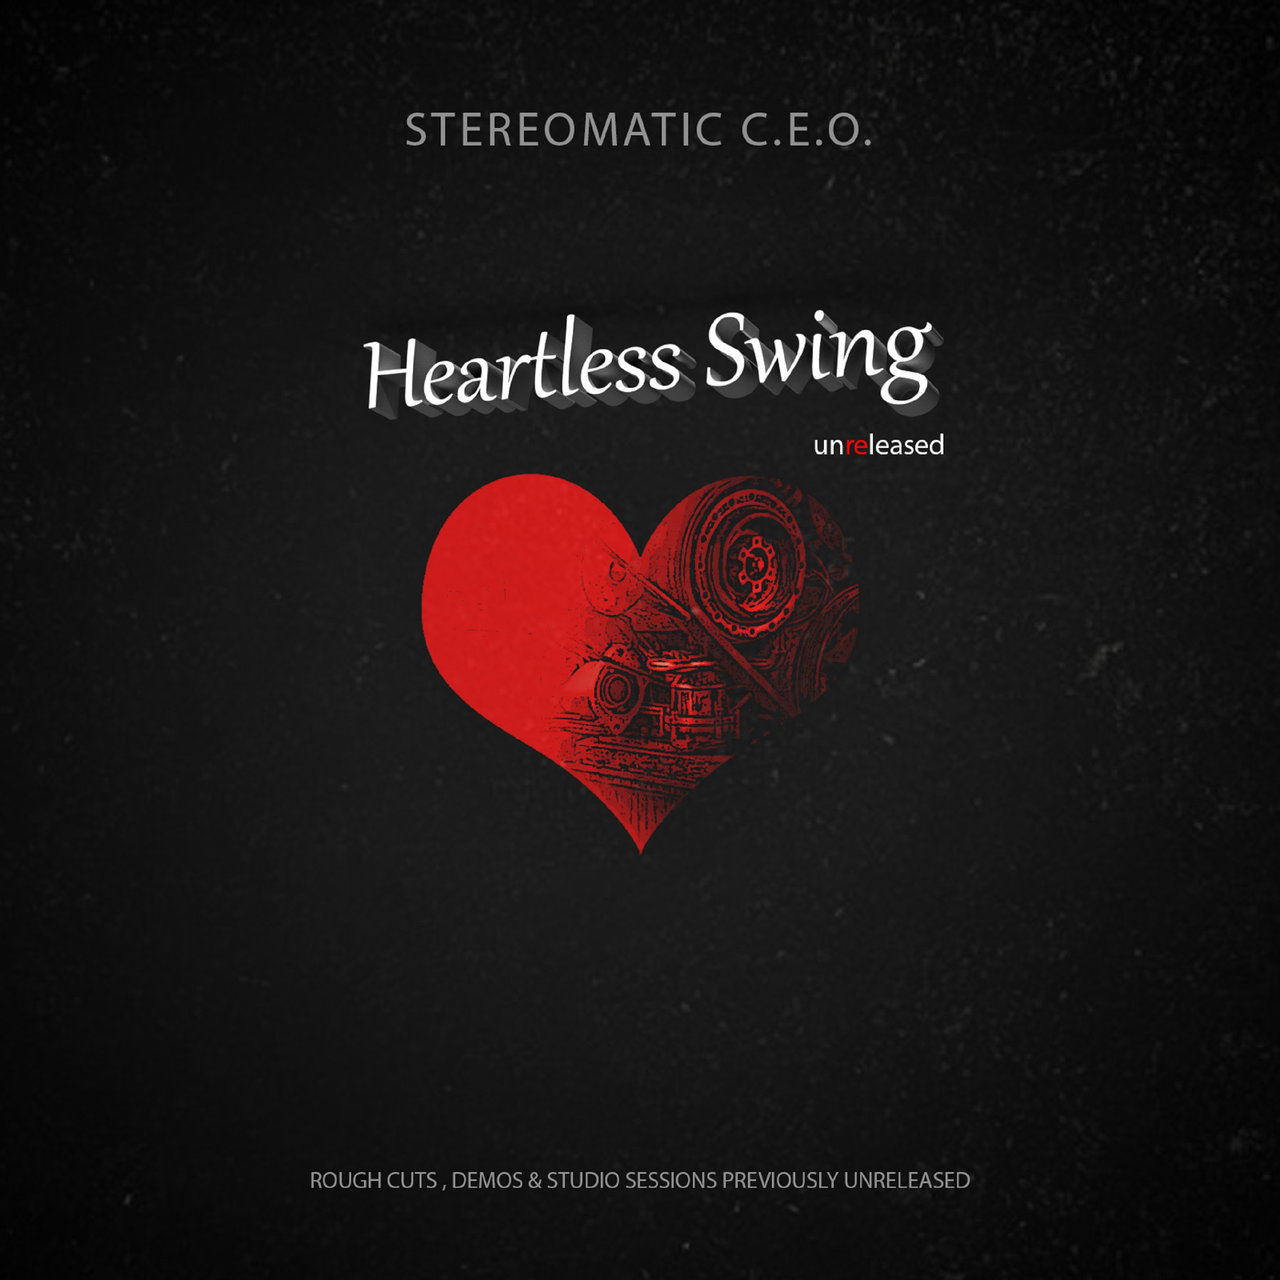 Heartless Swing